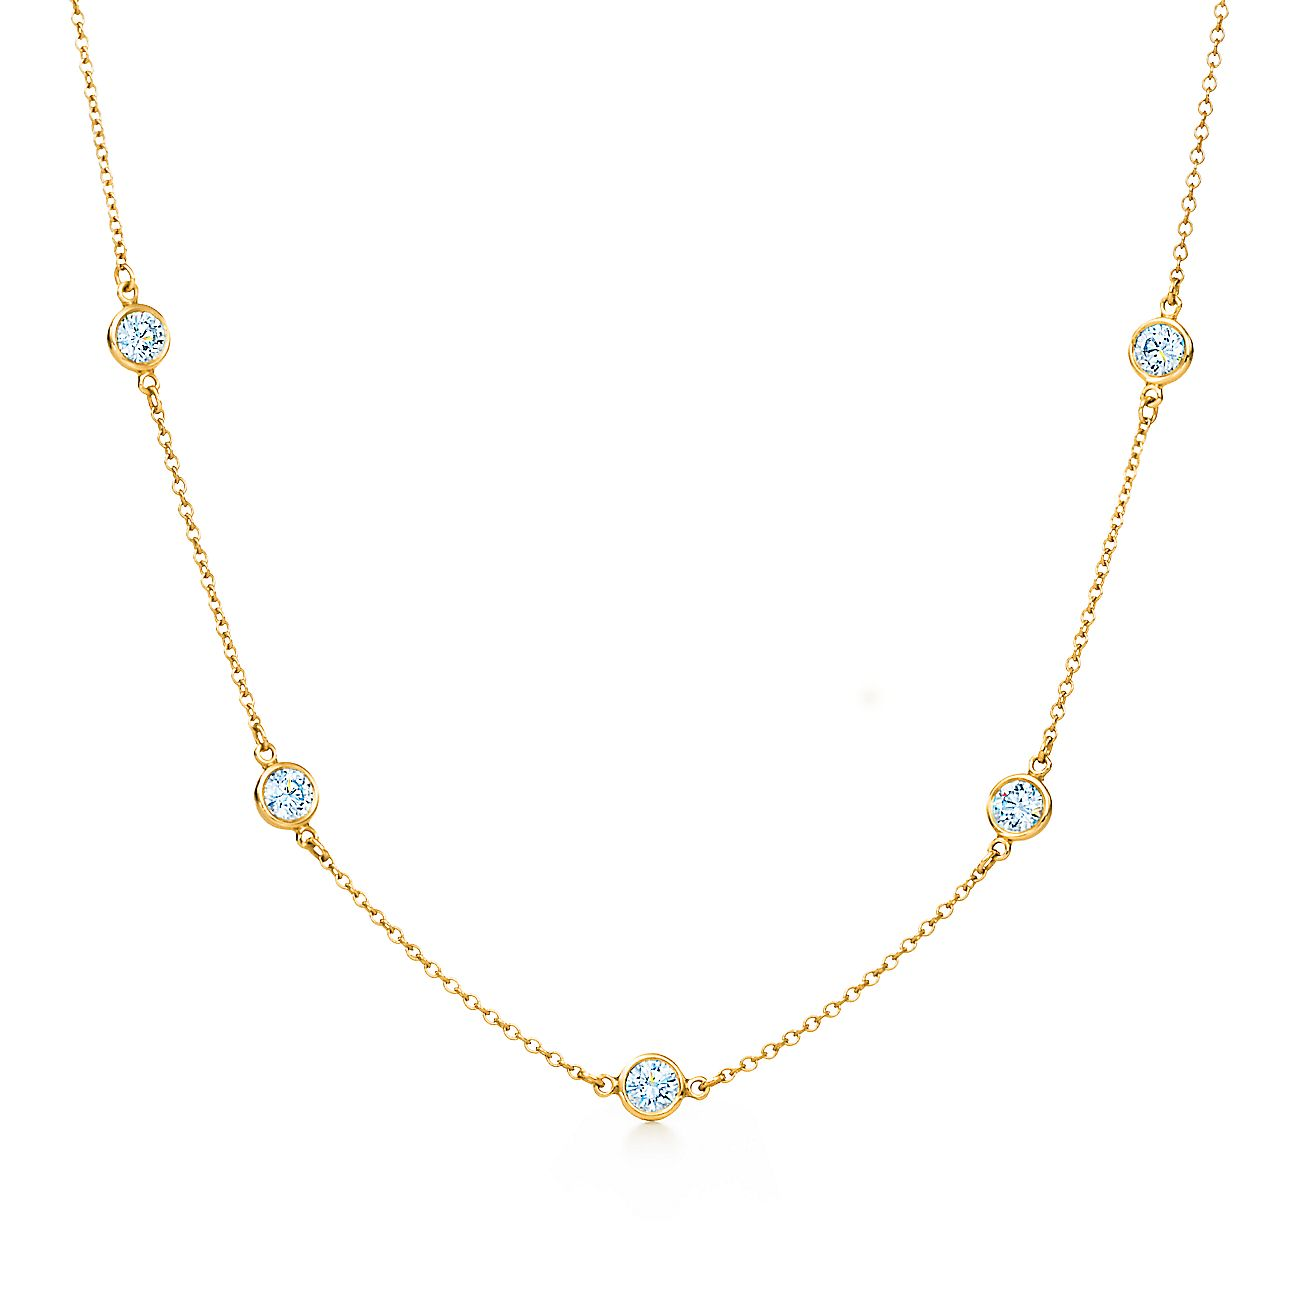 Shop Gifts For Her | Tiffany & Co.